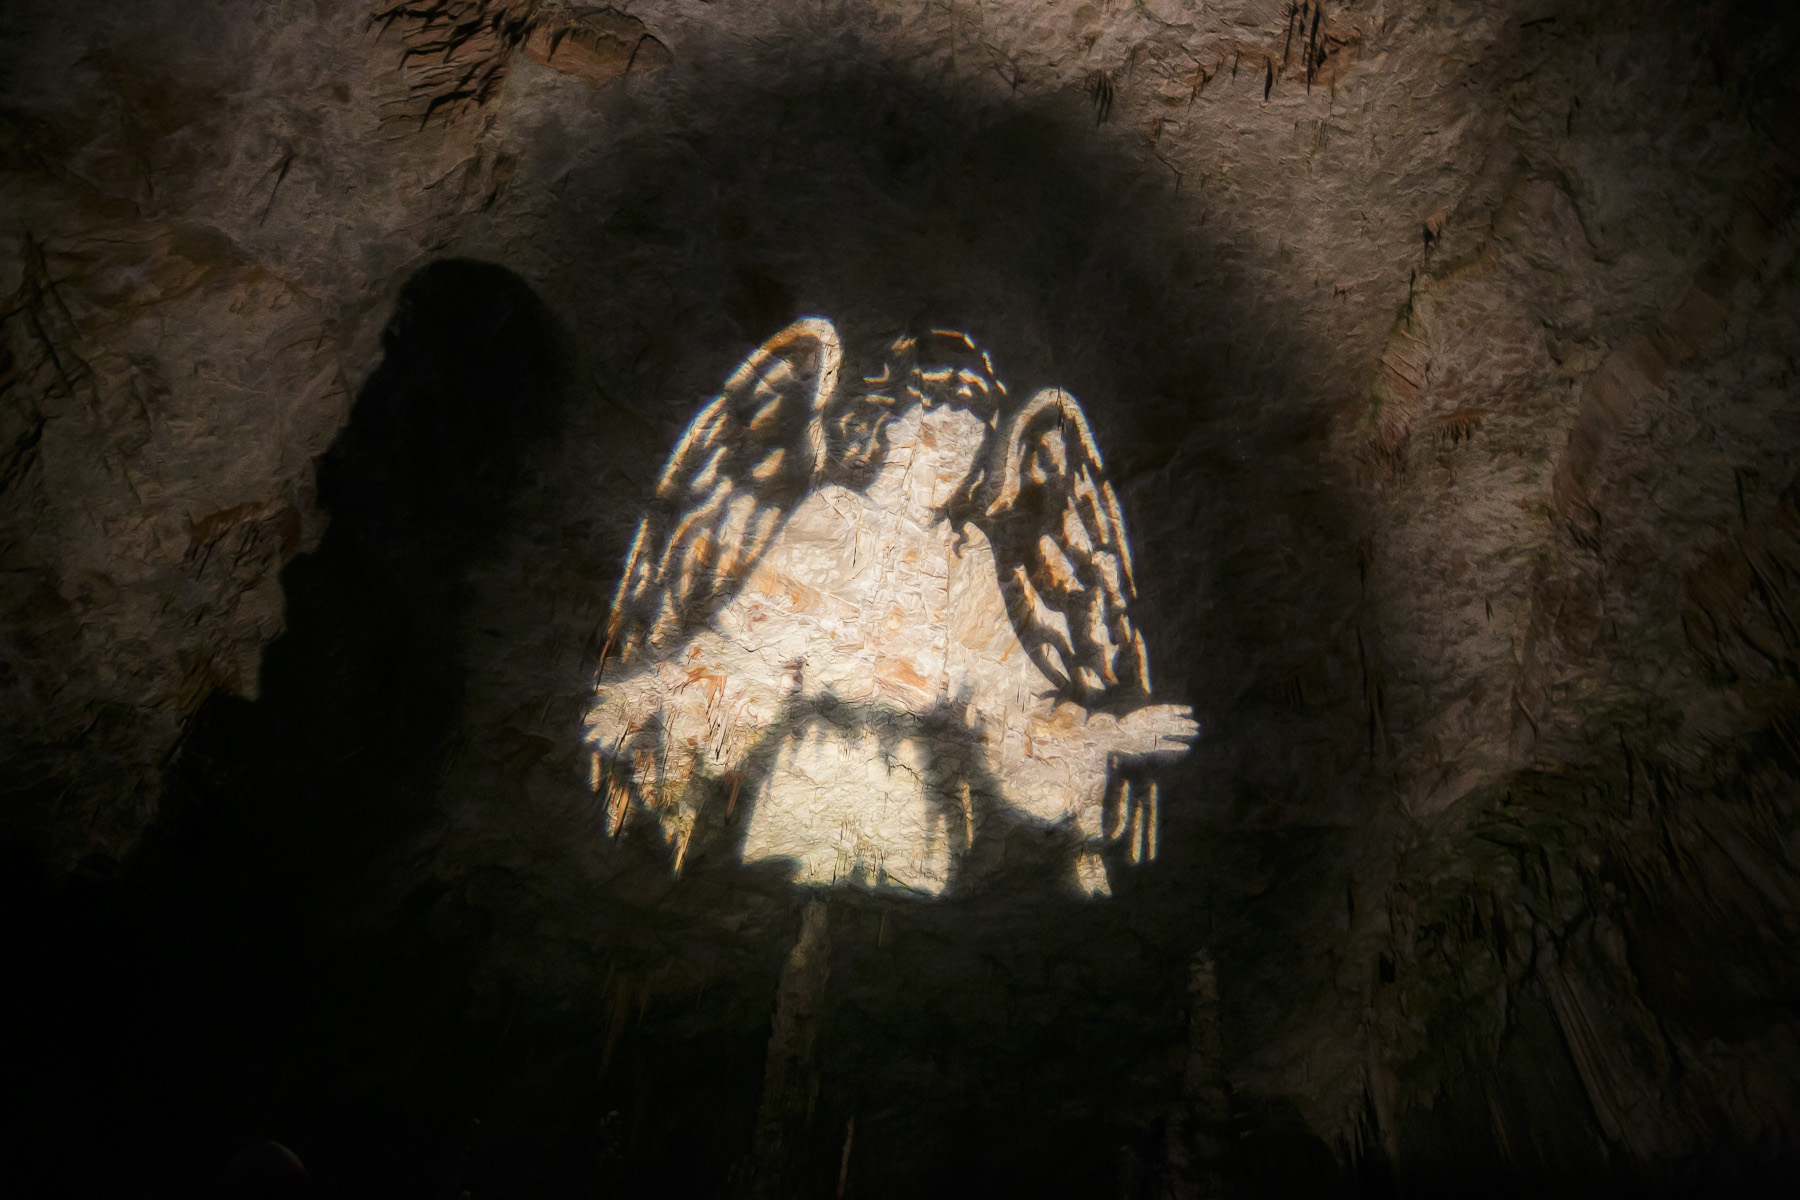 An angel is projected onto a cave ceiling during the world's largest live Nativity scene in a cave, staged in the world-famous Postojna Cave in Slovenia, Dec. 25, 2015.